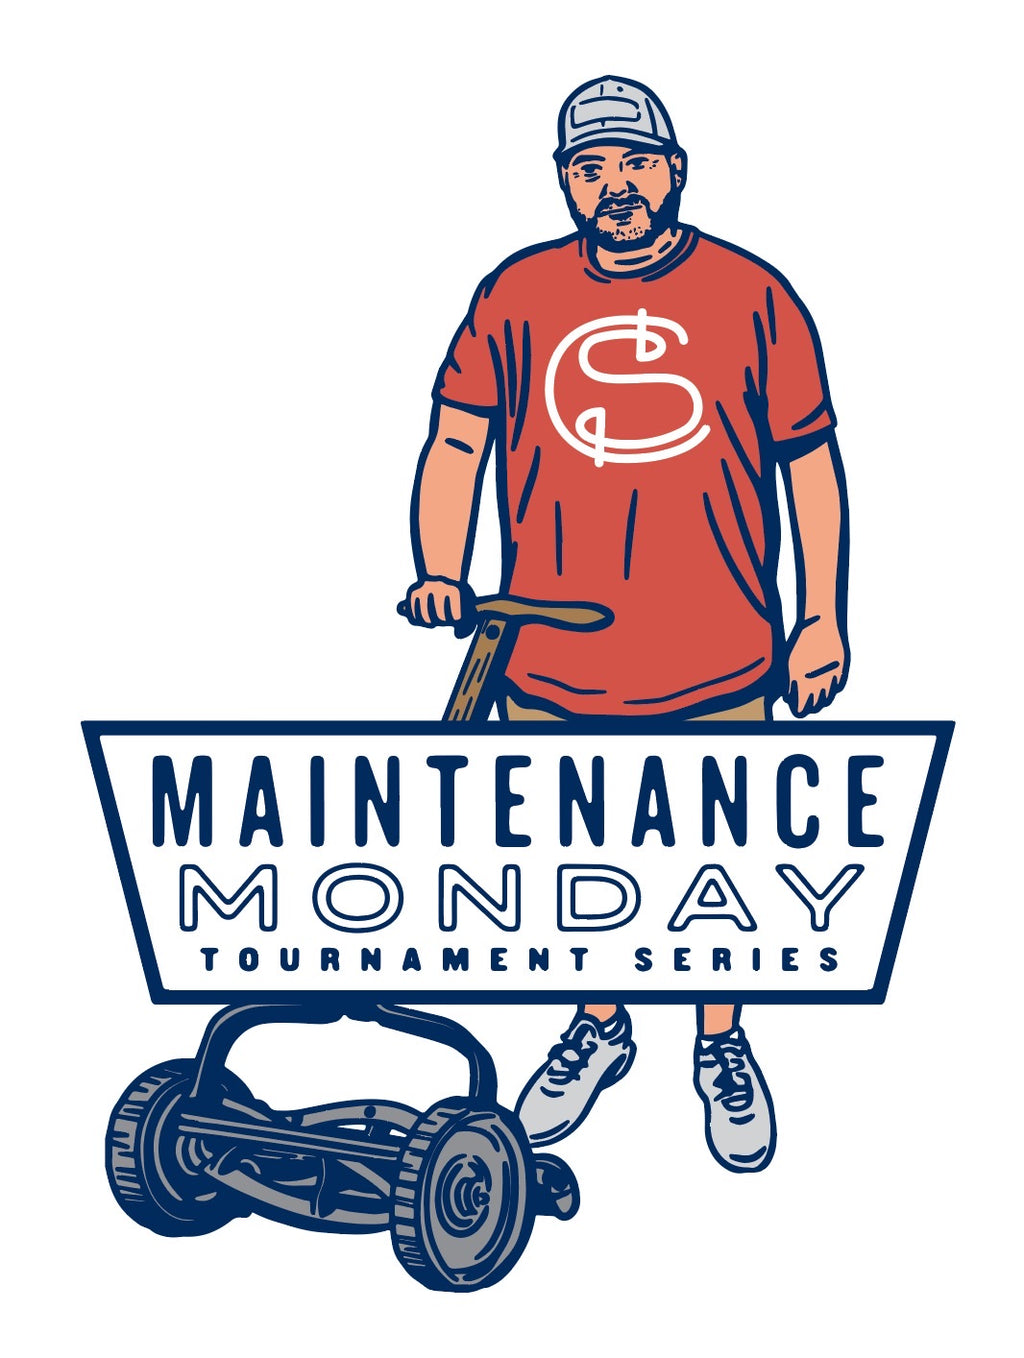 Maintenance Monday Tournament Series